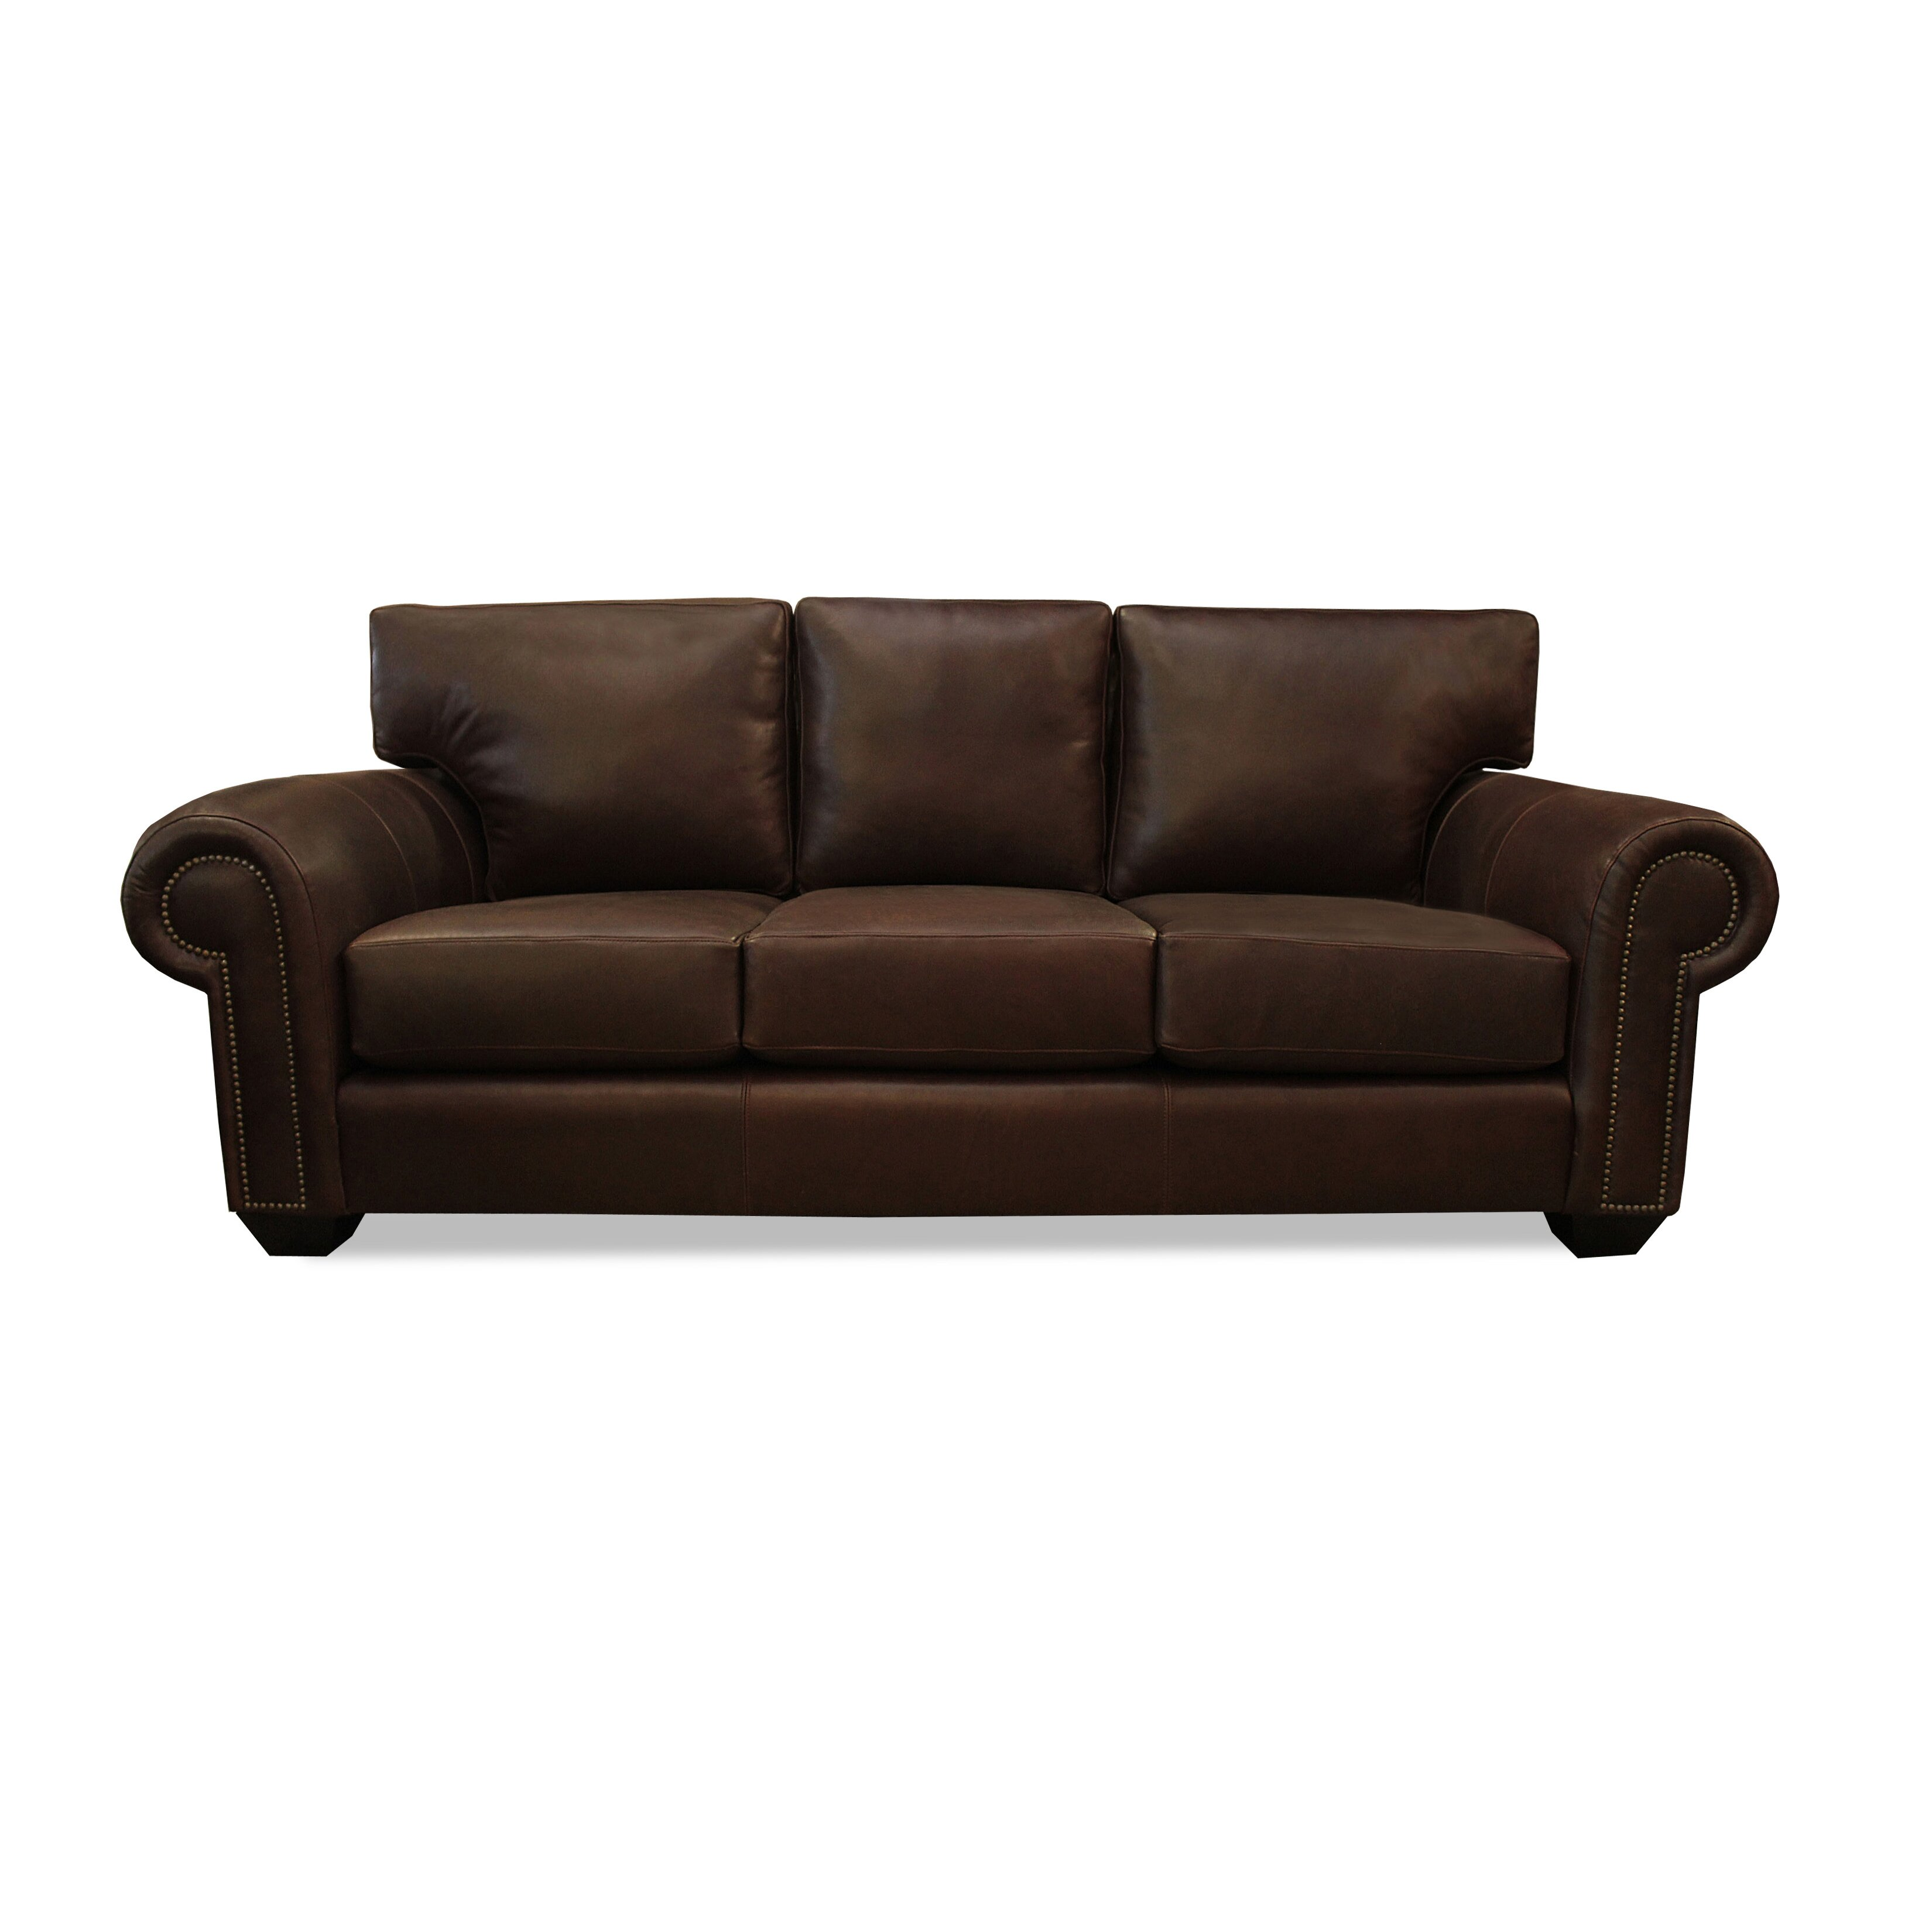 Sofa manchester uk Copperfield sofa